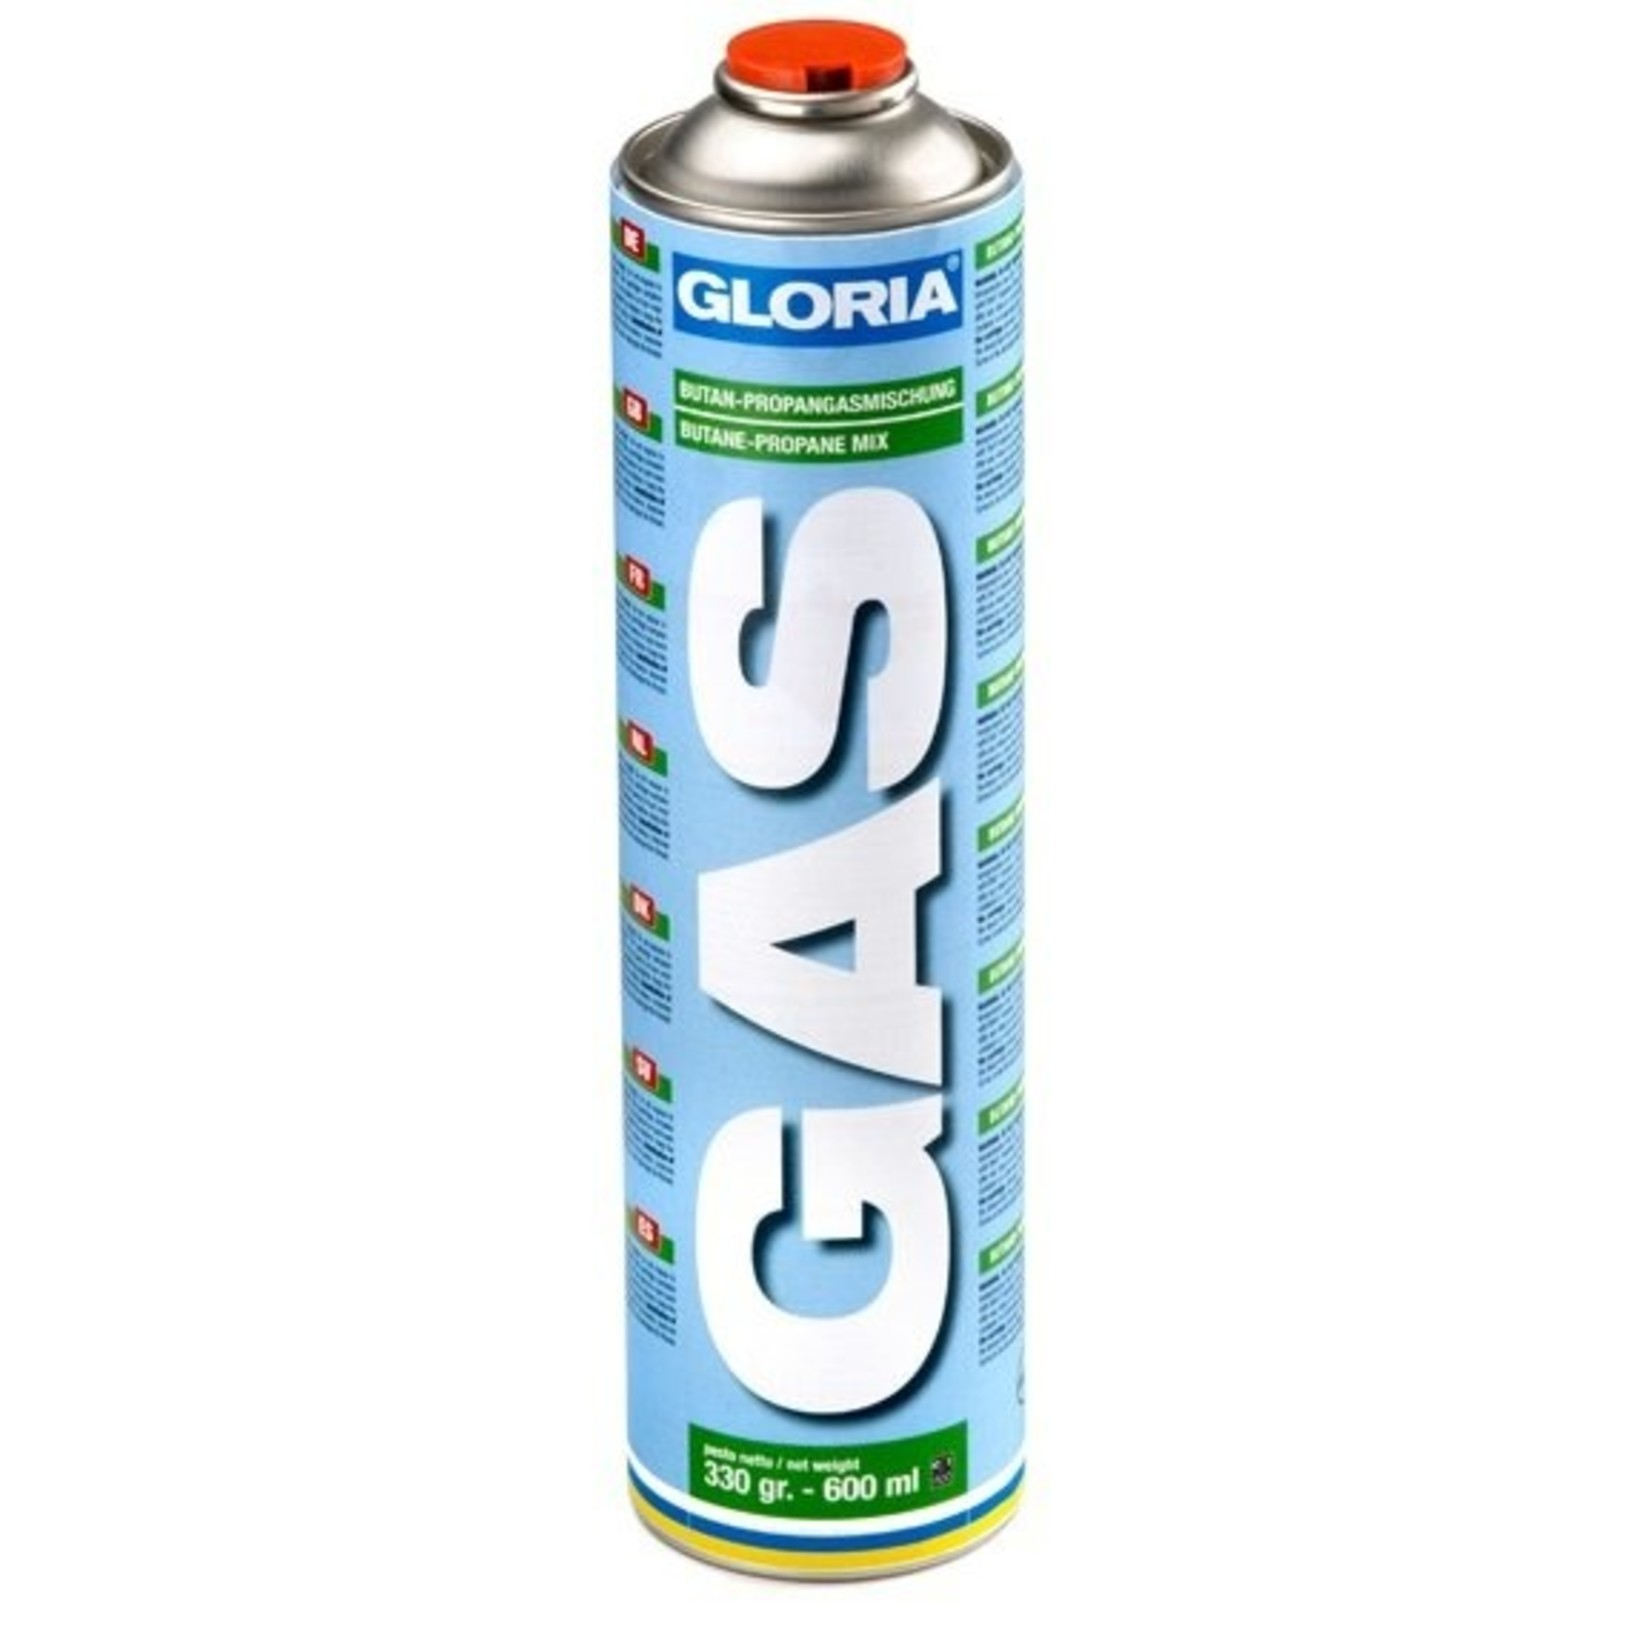 Gloria Thermoflamm los gasflesje 600 ml / 330 gram